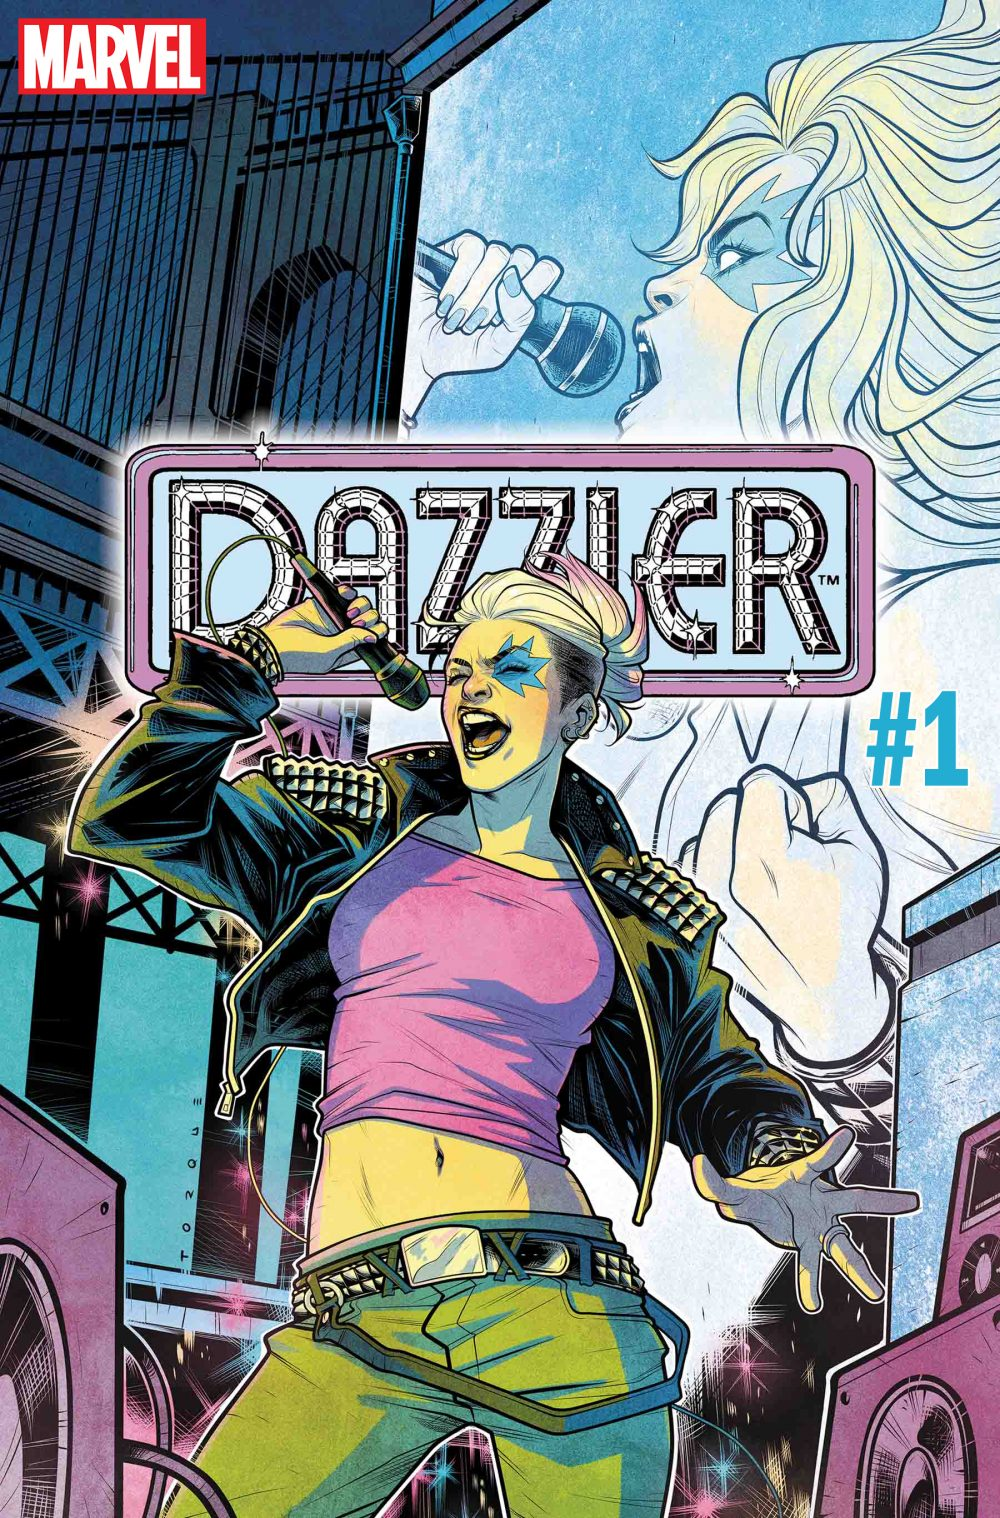 Dazzler Rocks On This June In A New Story Diskingdom